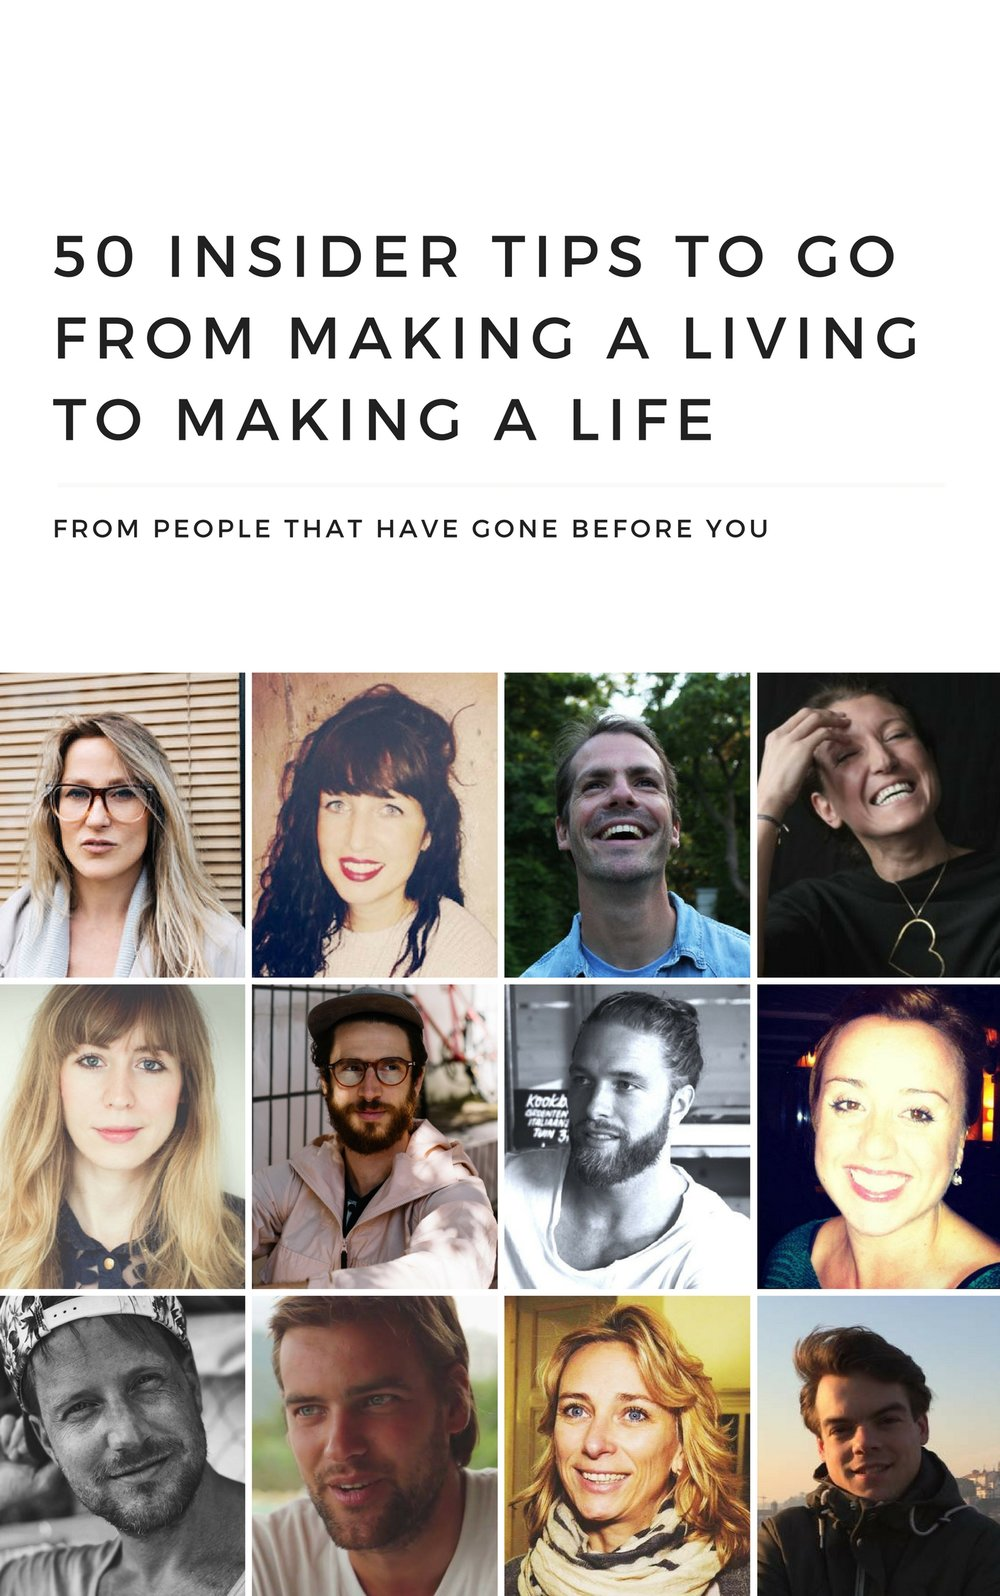 50 insider tips to go from making a living to making a life